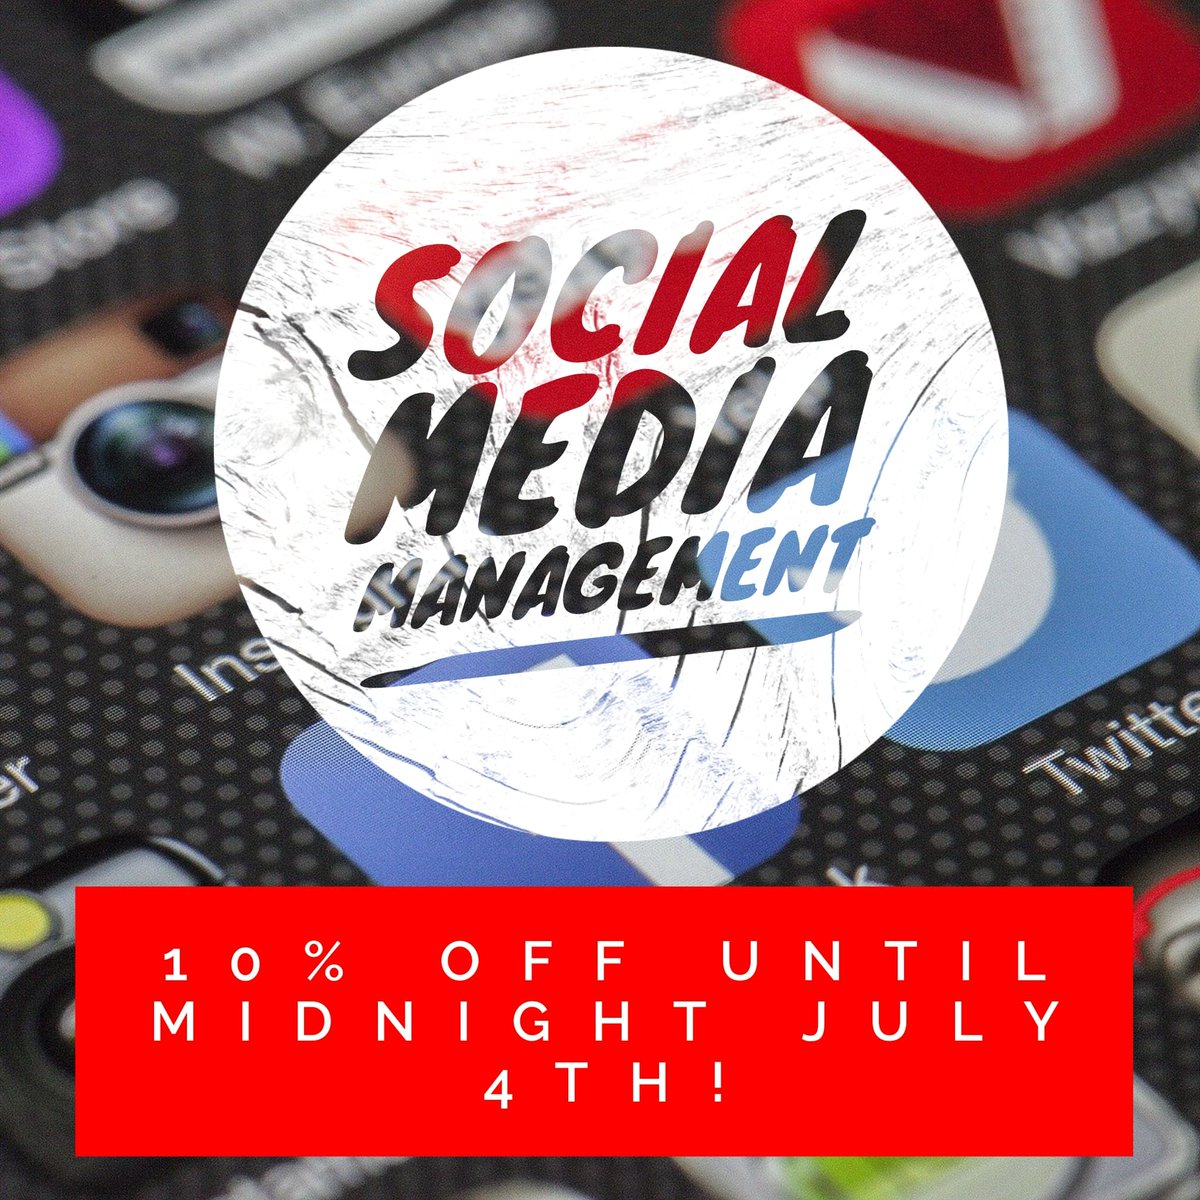 HAPPY 4TH!! We are 10% off of social media services until midnight tonight to celebrate! Shop all of our business services TODAY, LINK IN BIO! #dallastx #marketingagency #marketingstrategy #marketingtips #mindyobizz_inc #mindyobusinessinc #marketingstrategy #onlinemarketingpic.twitter.com/RRNvc14OSM